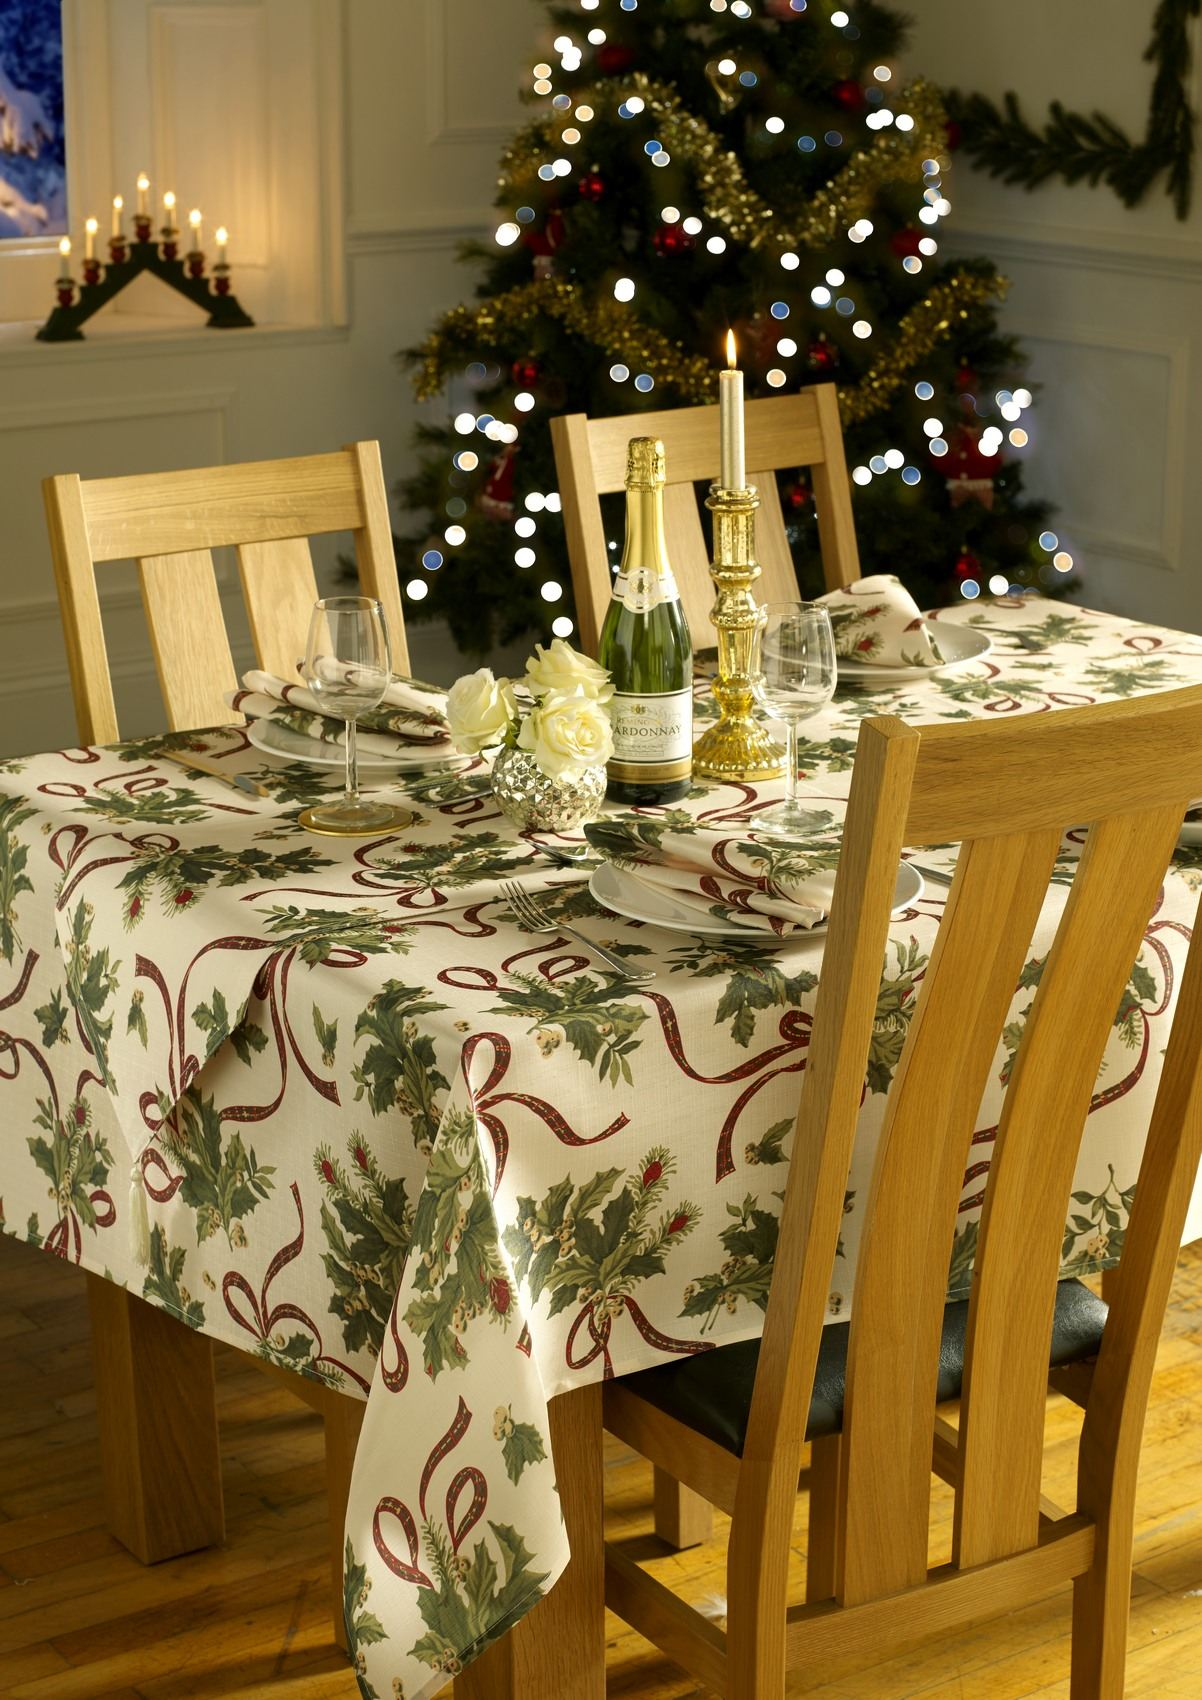 Christmas Xmas Table Cloths Or Runners Or Napkins Large Small Round Square Red Ebay